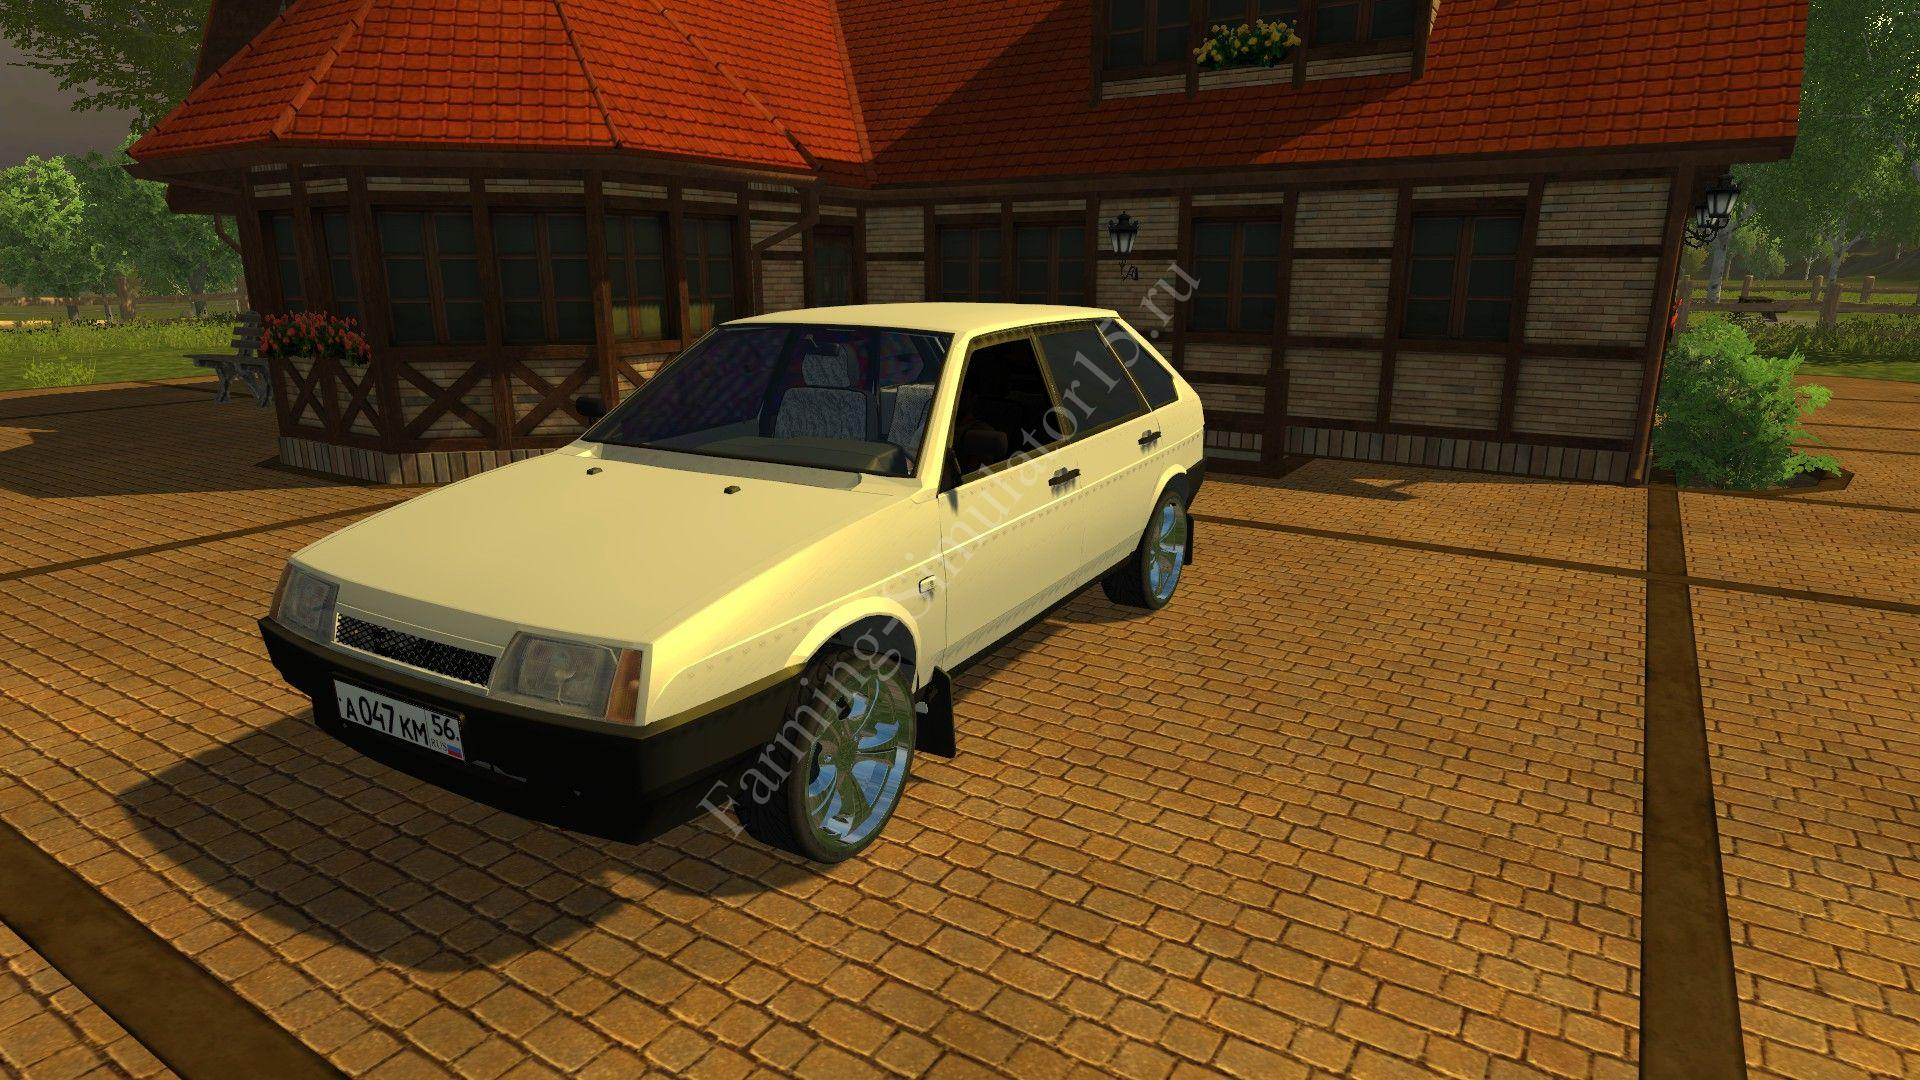 Мод легкового авто VAZ 21093 v 1.0 More Realistic Farming Simulator 2013, Farming Simulator 13